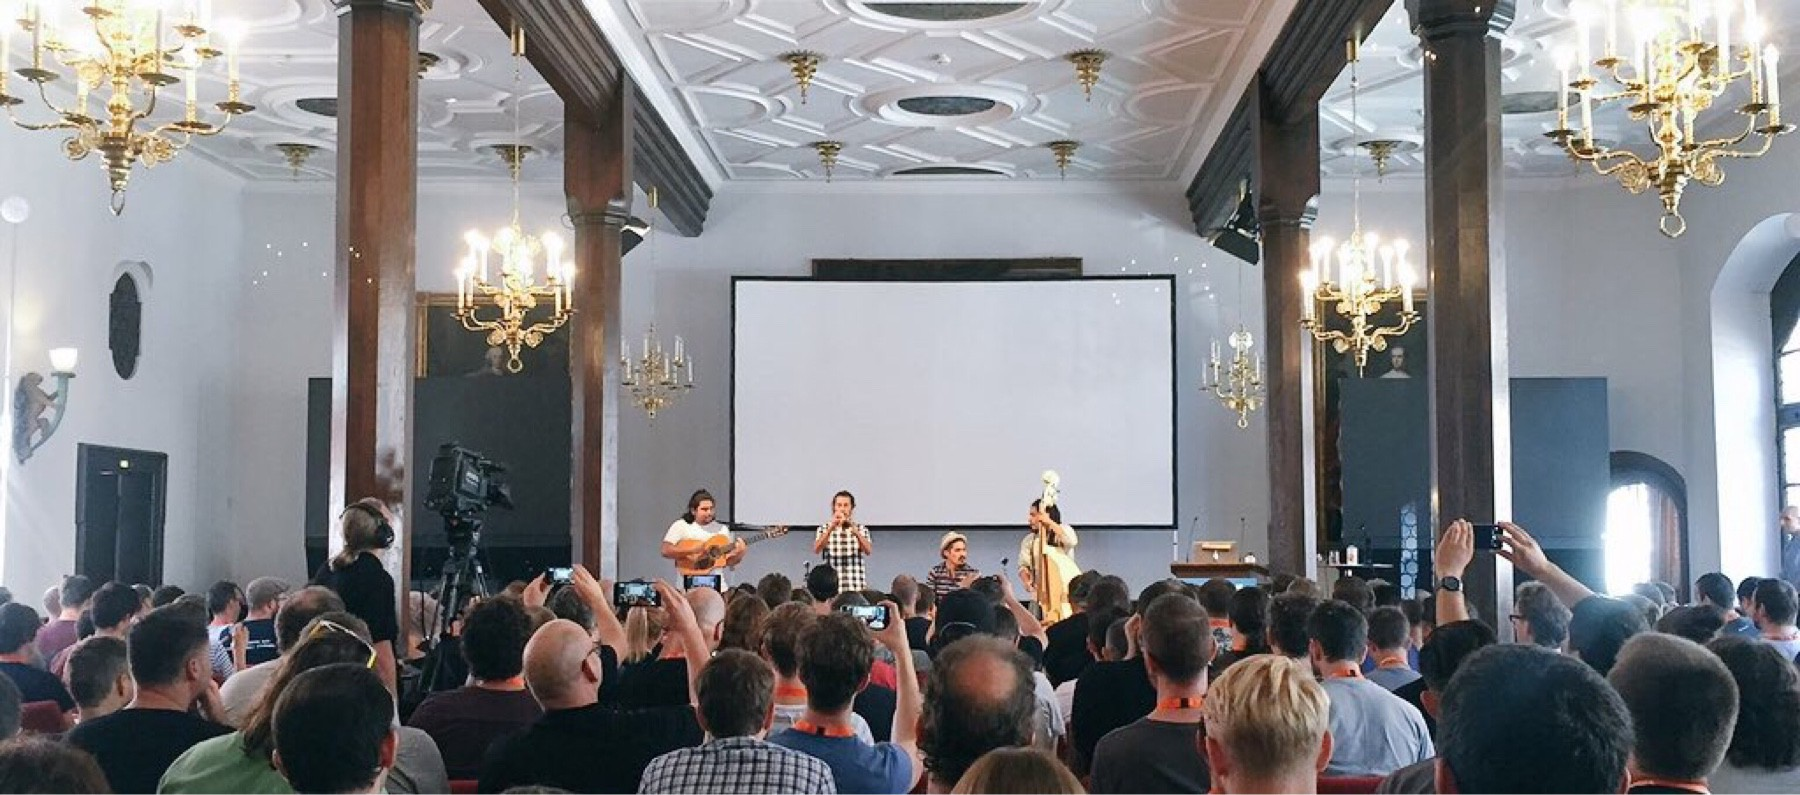 Grünhof Freiburg highlights from smashing conference s 10th anniversary event in